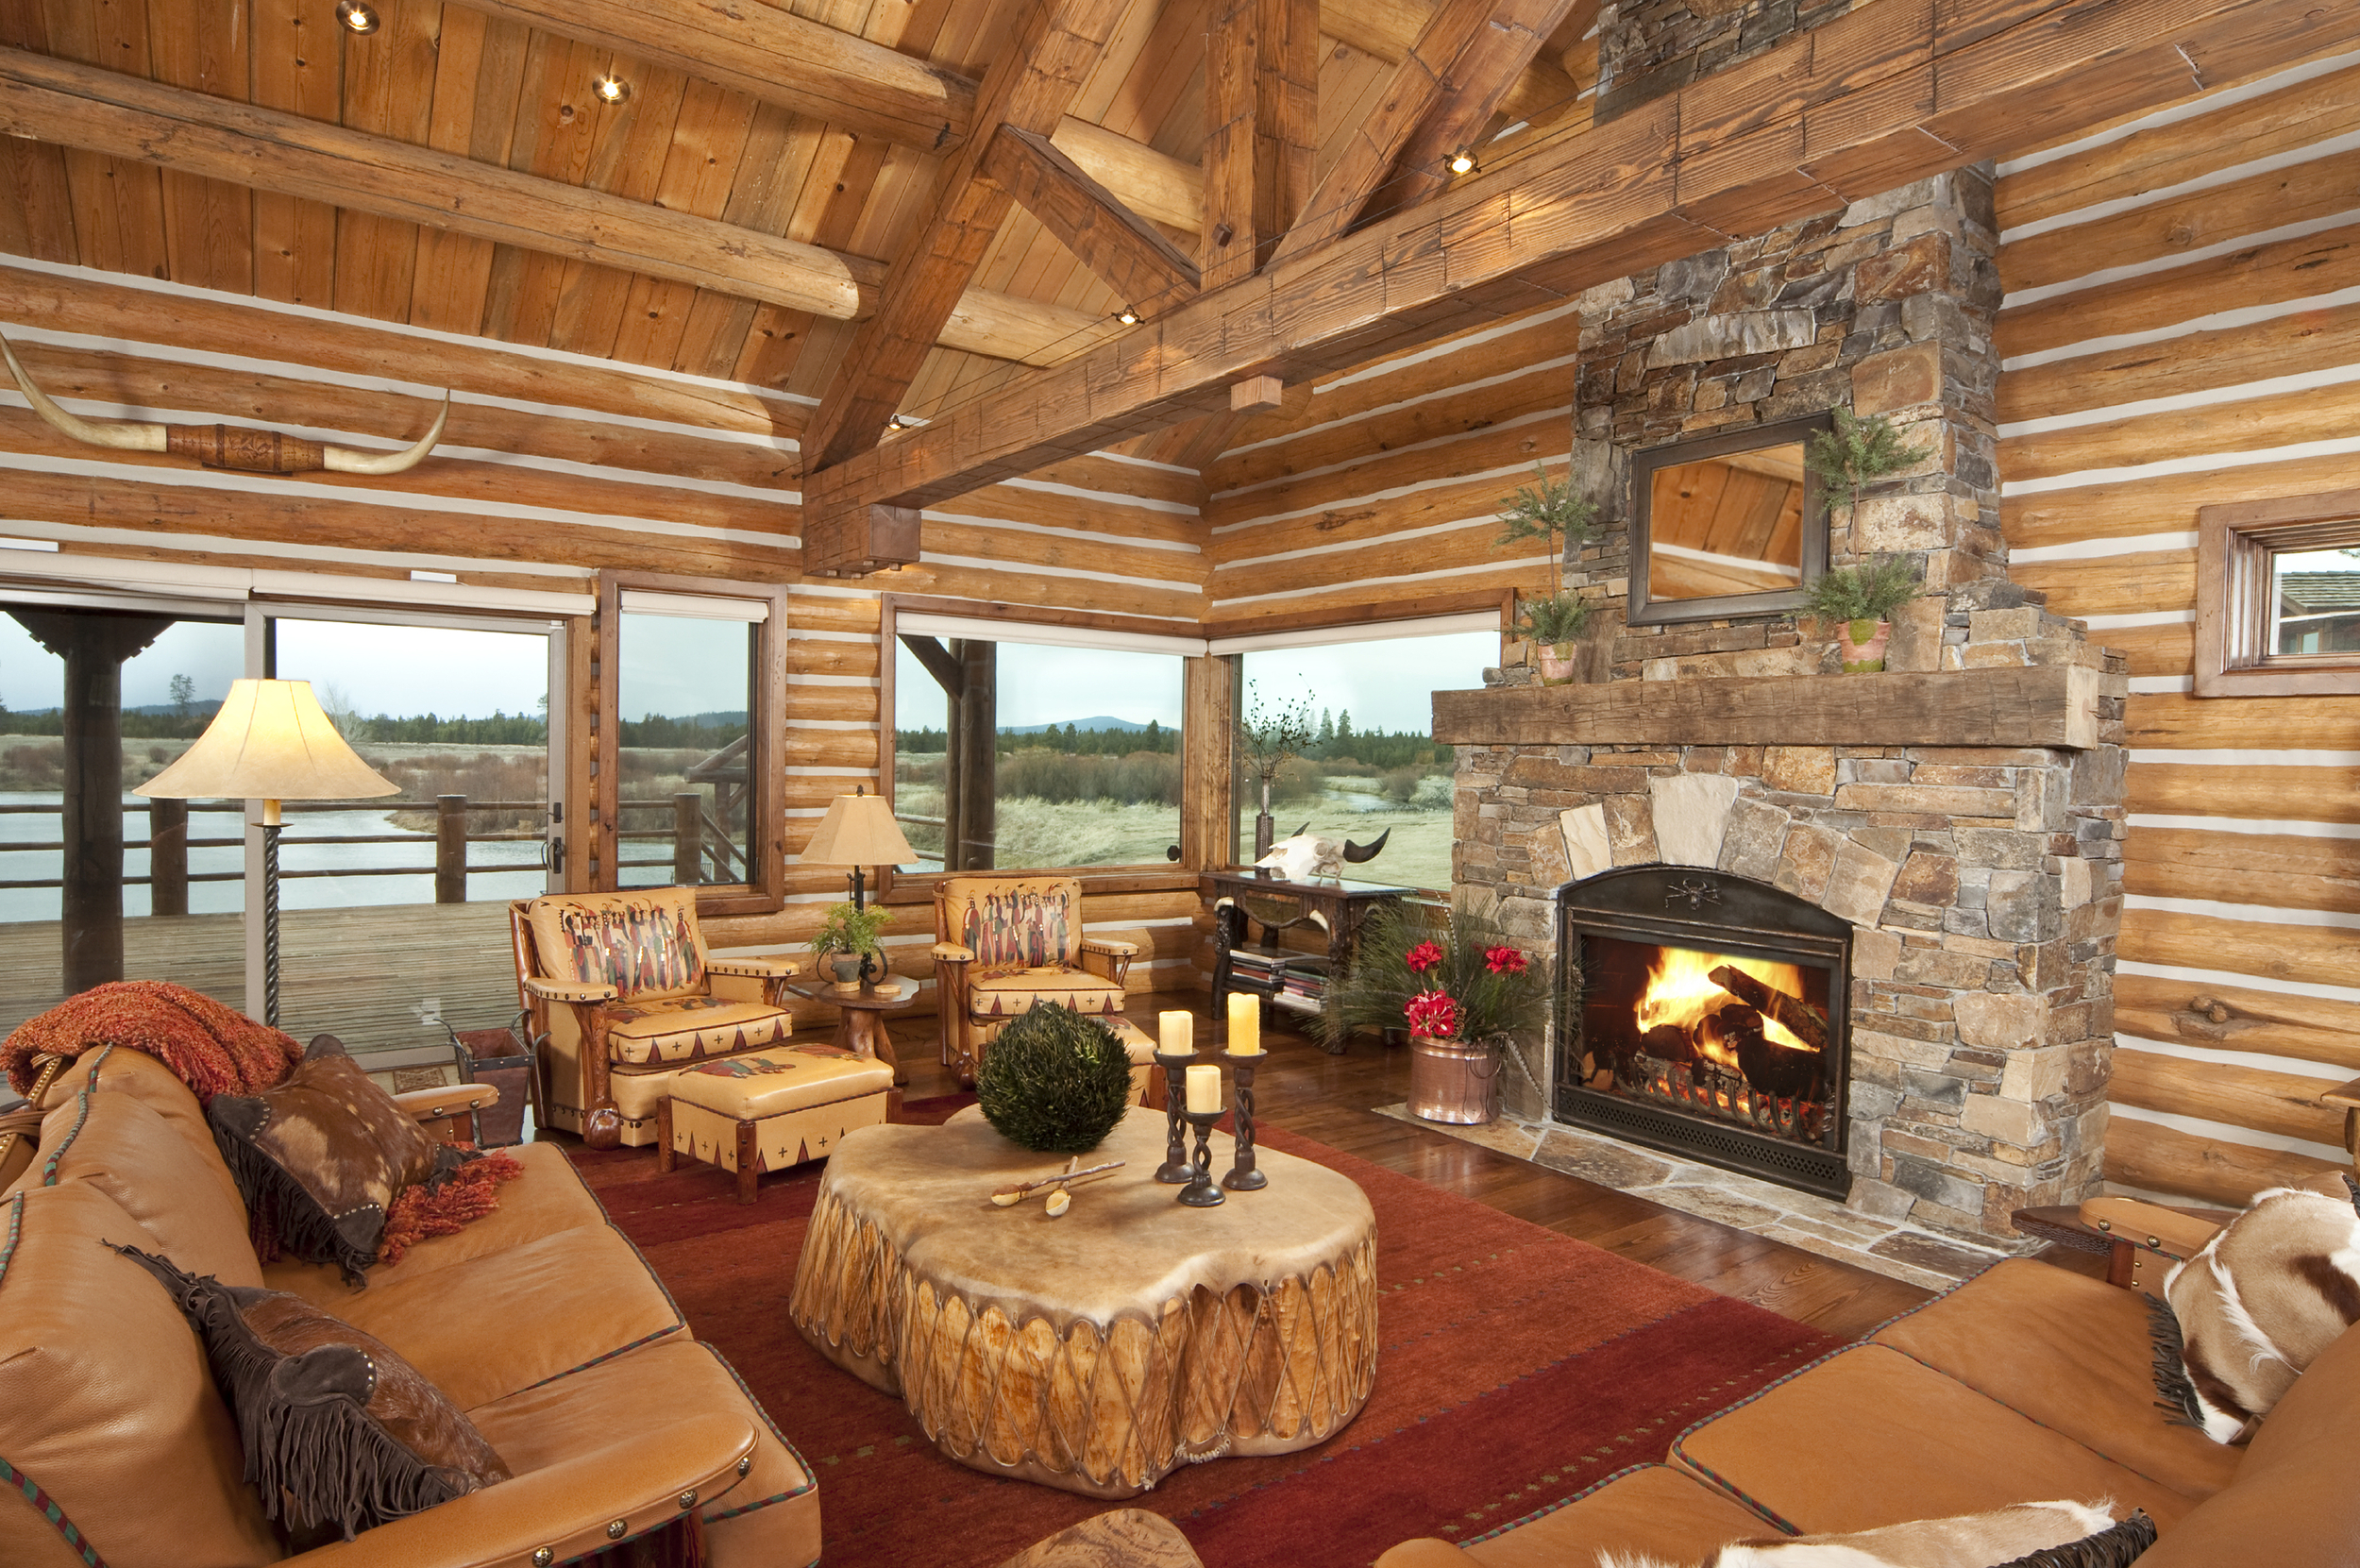 Experience Mountain Living in the Foothills of Colorado. Communities in Evergreen, Morrison, Golden,Littleton & Boulder can offer this type of living.